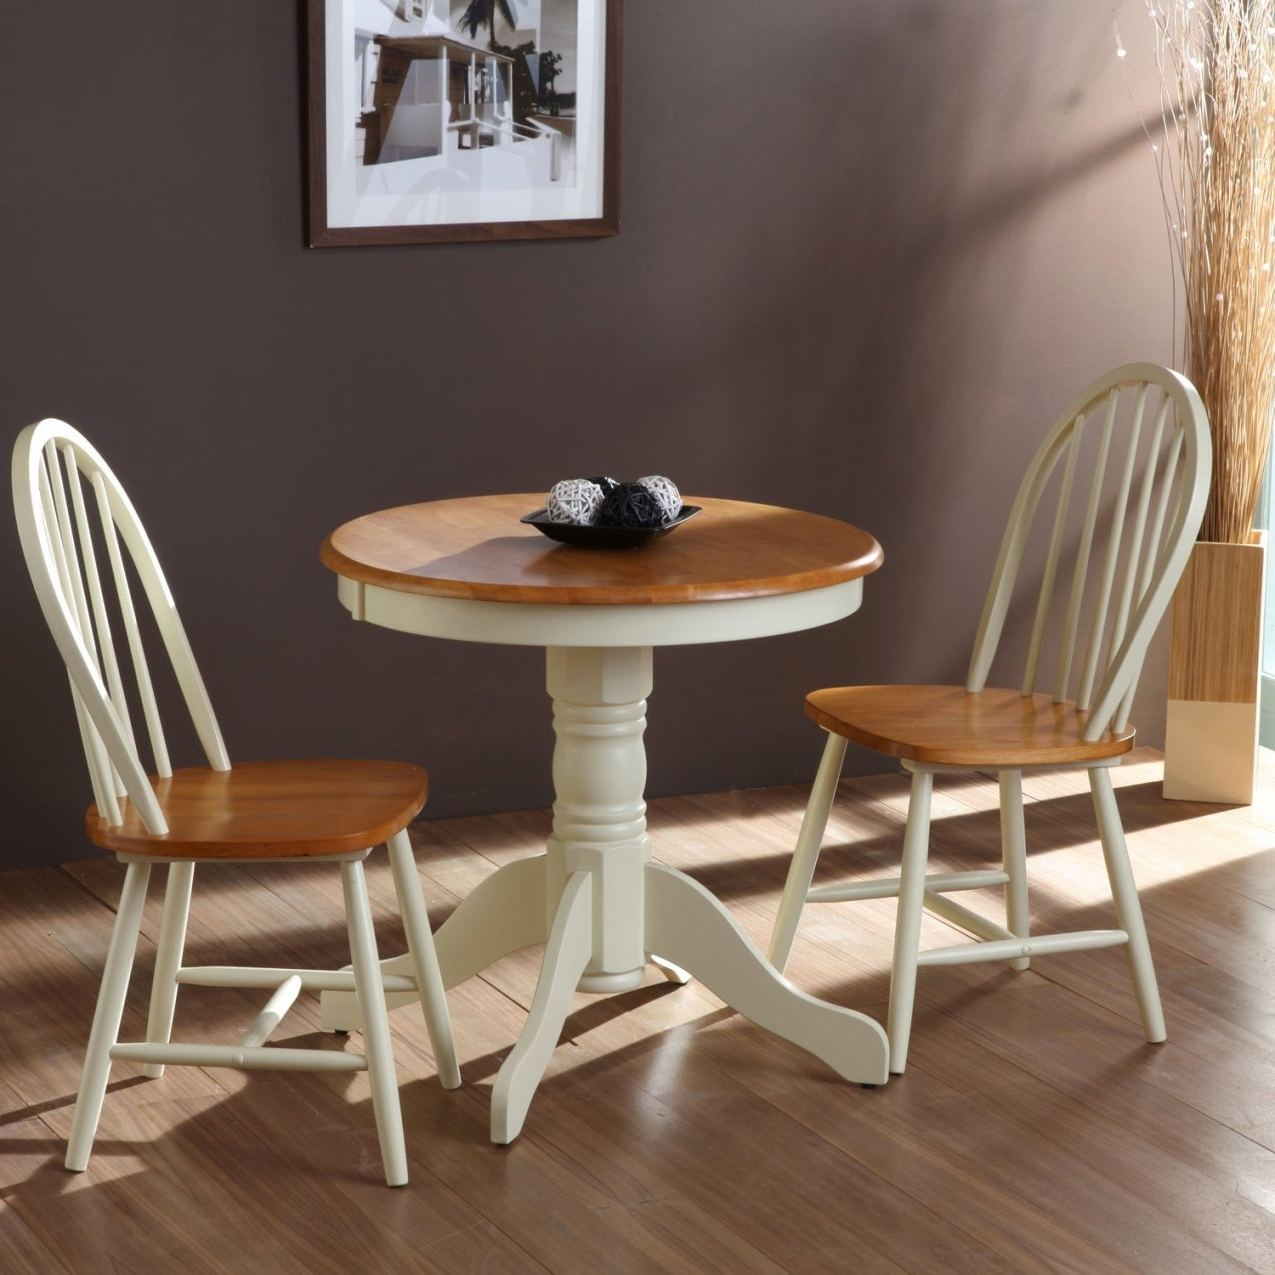 Best 2 Seater Dining Table And Chairs About Home Renovation Plan Inside Most Recently Released Two Seater Dining Tables (View 15 of 25)